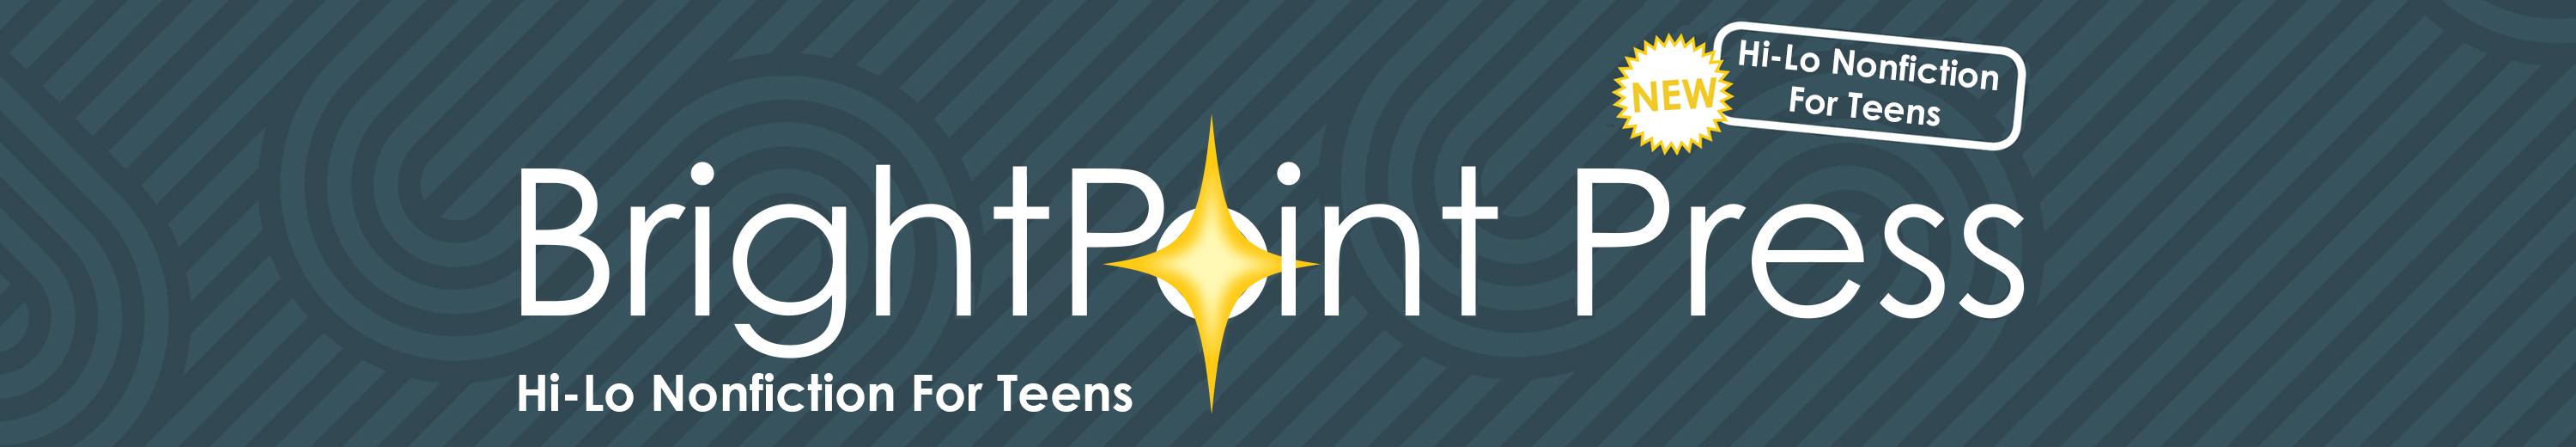 BrightPoint Press header